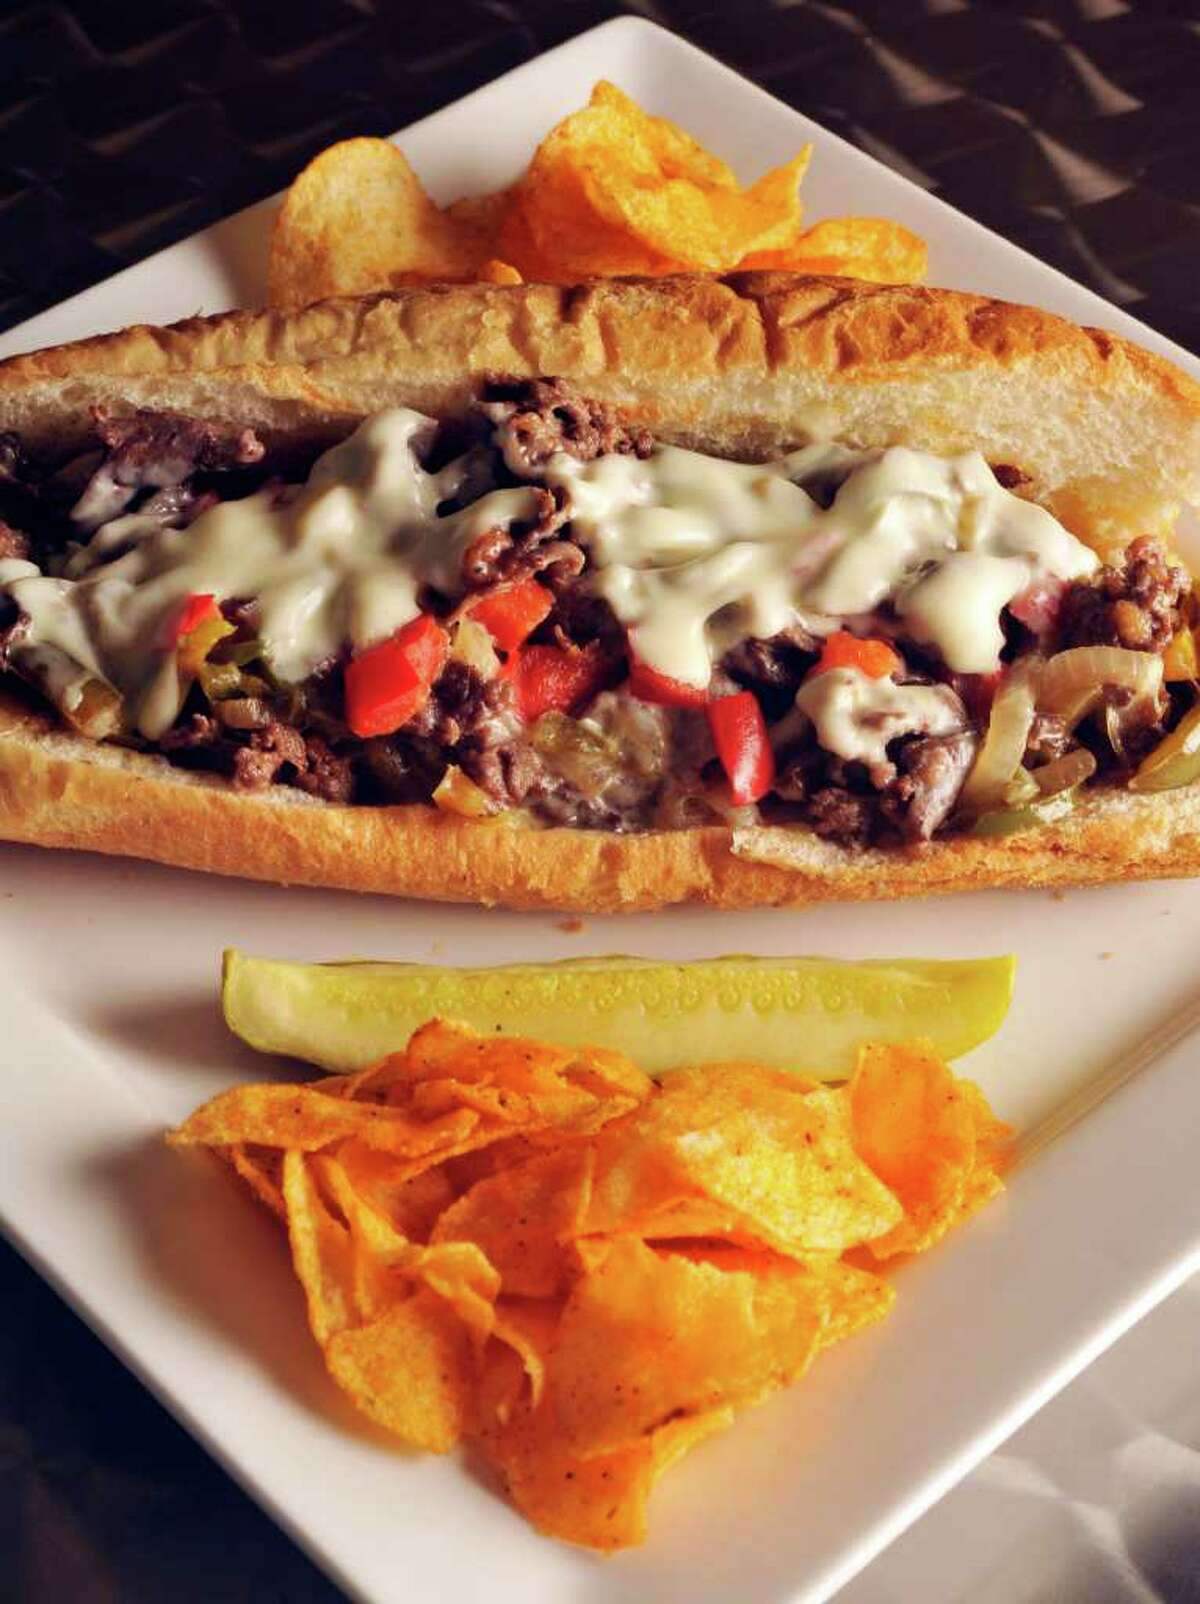 A Philly Steak sandwich with chips from the Spice Rack Deli.